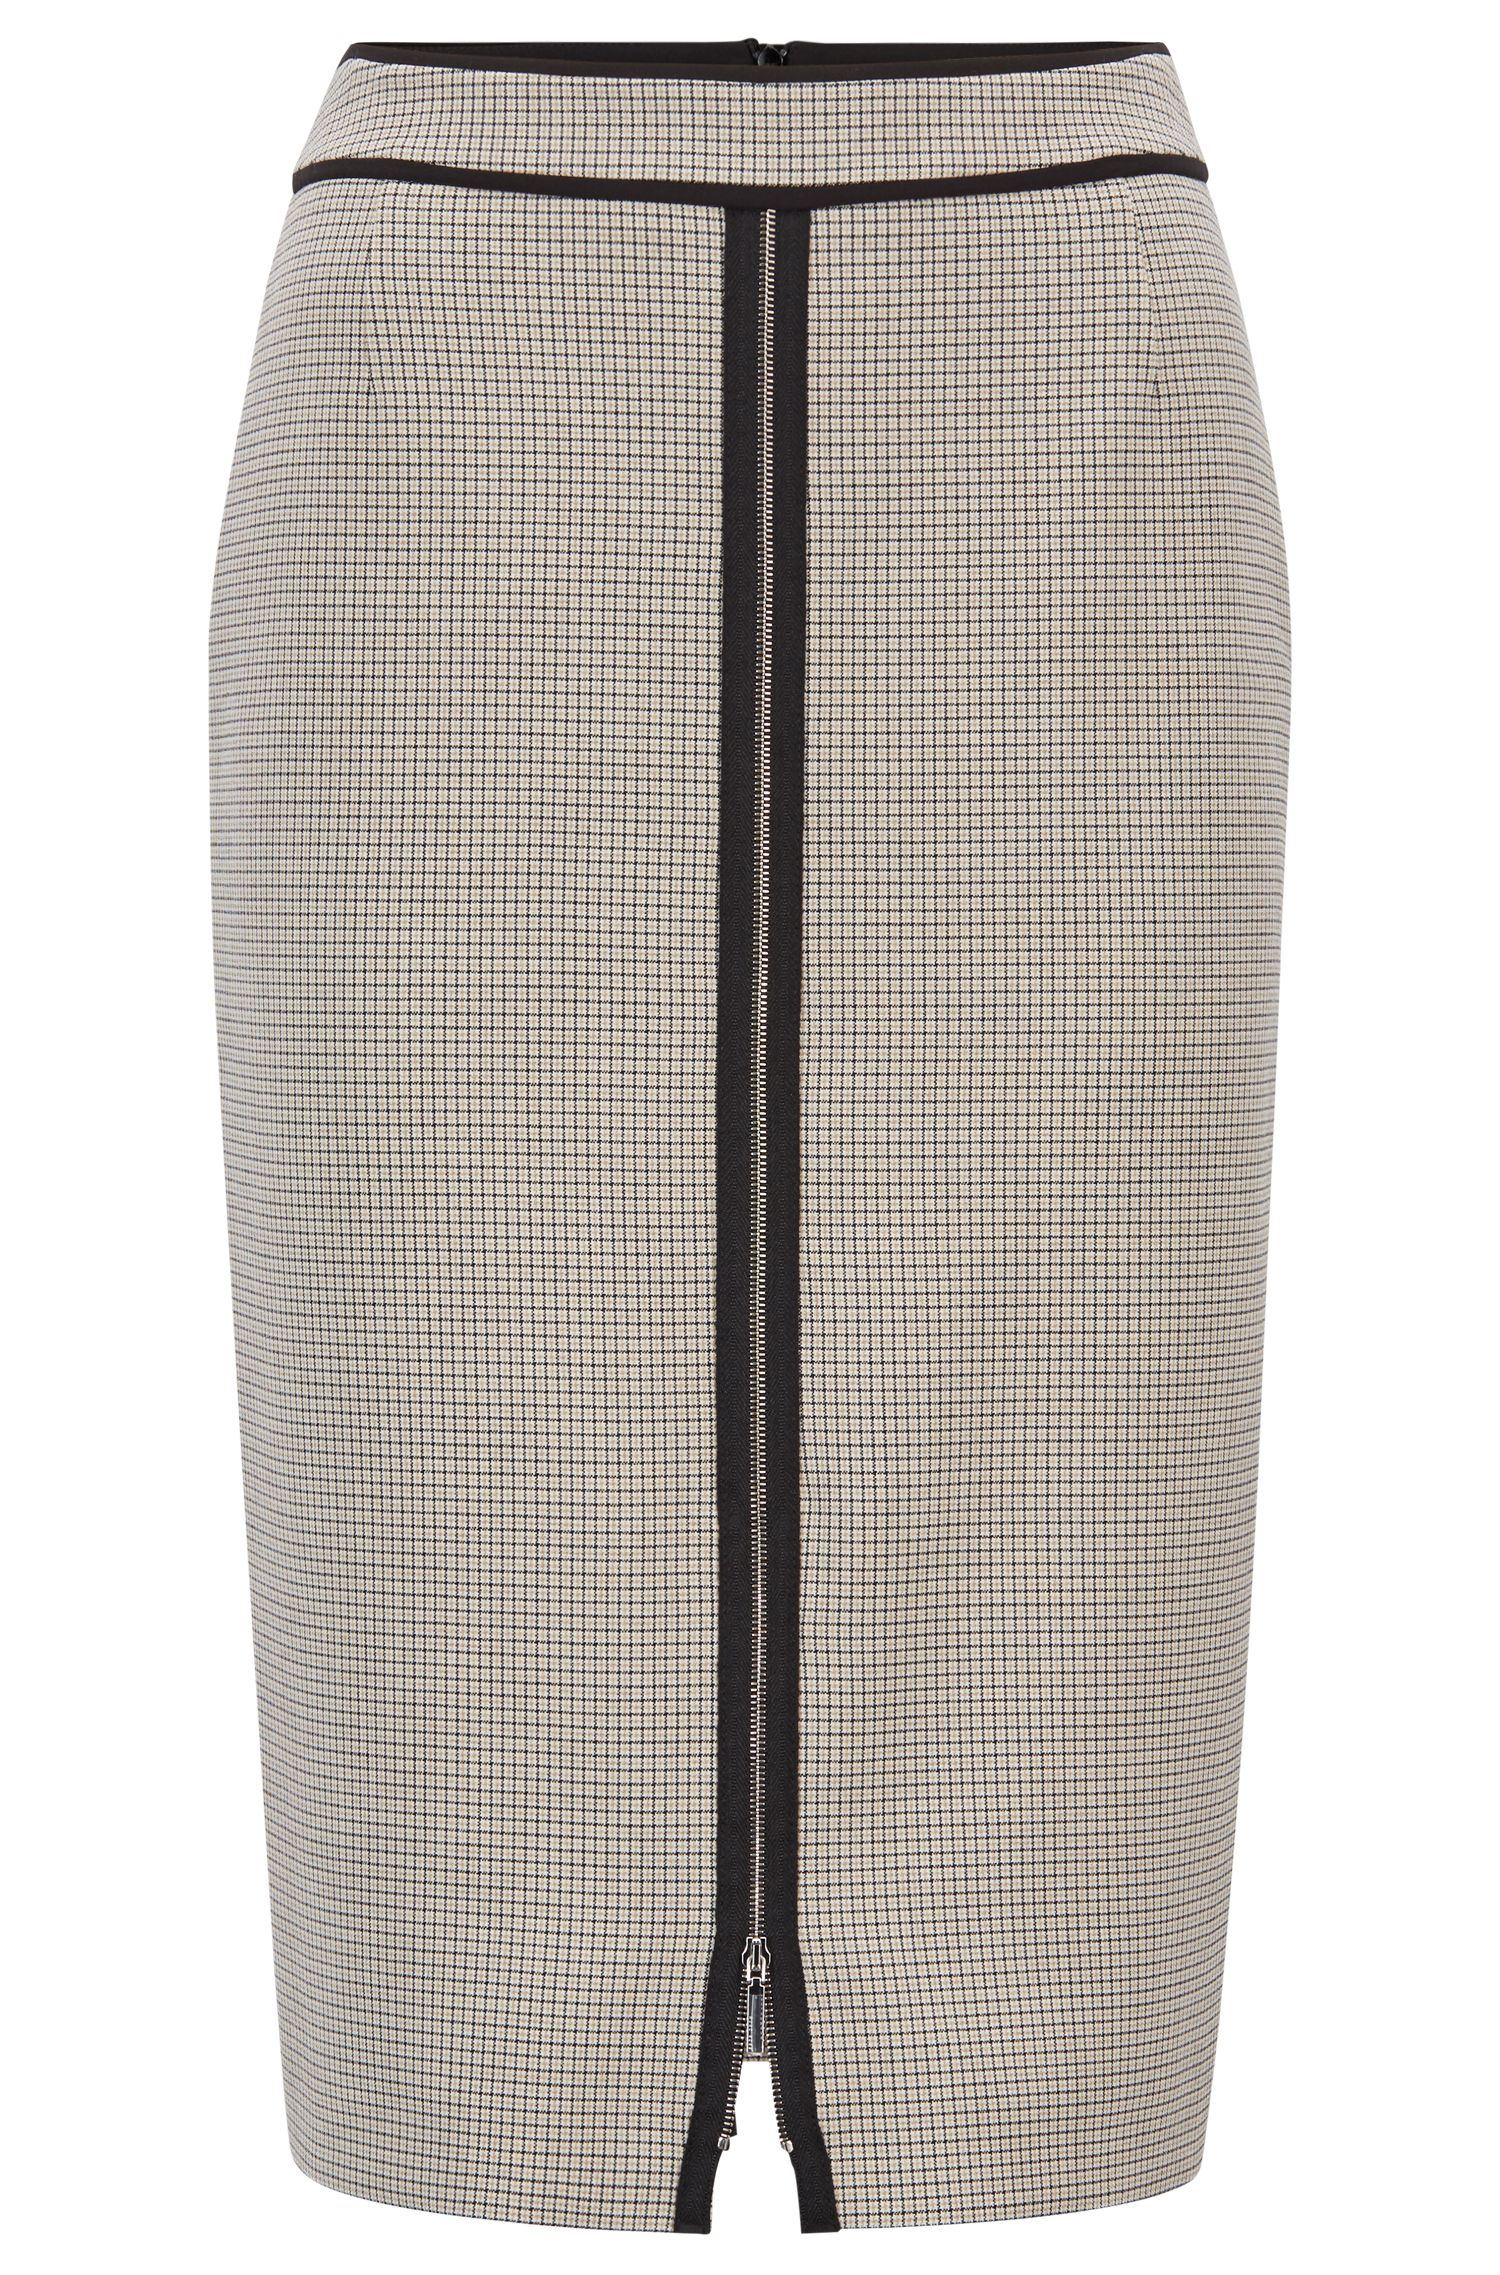 Pencil skirt in checked stretch fabric with front zip